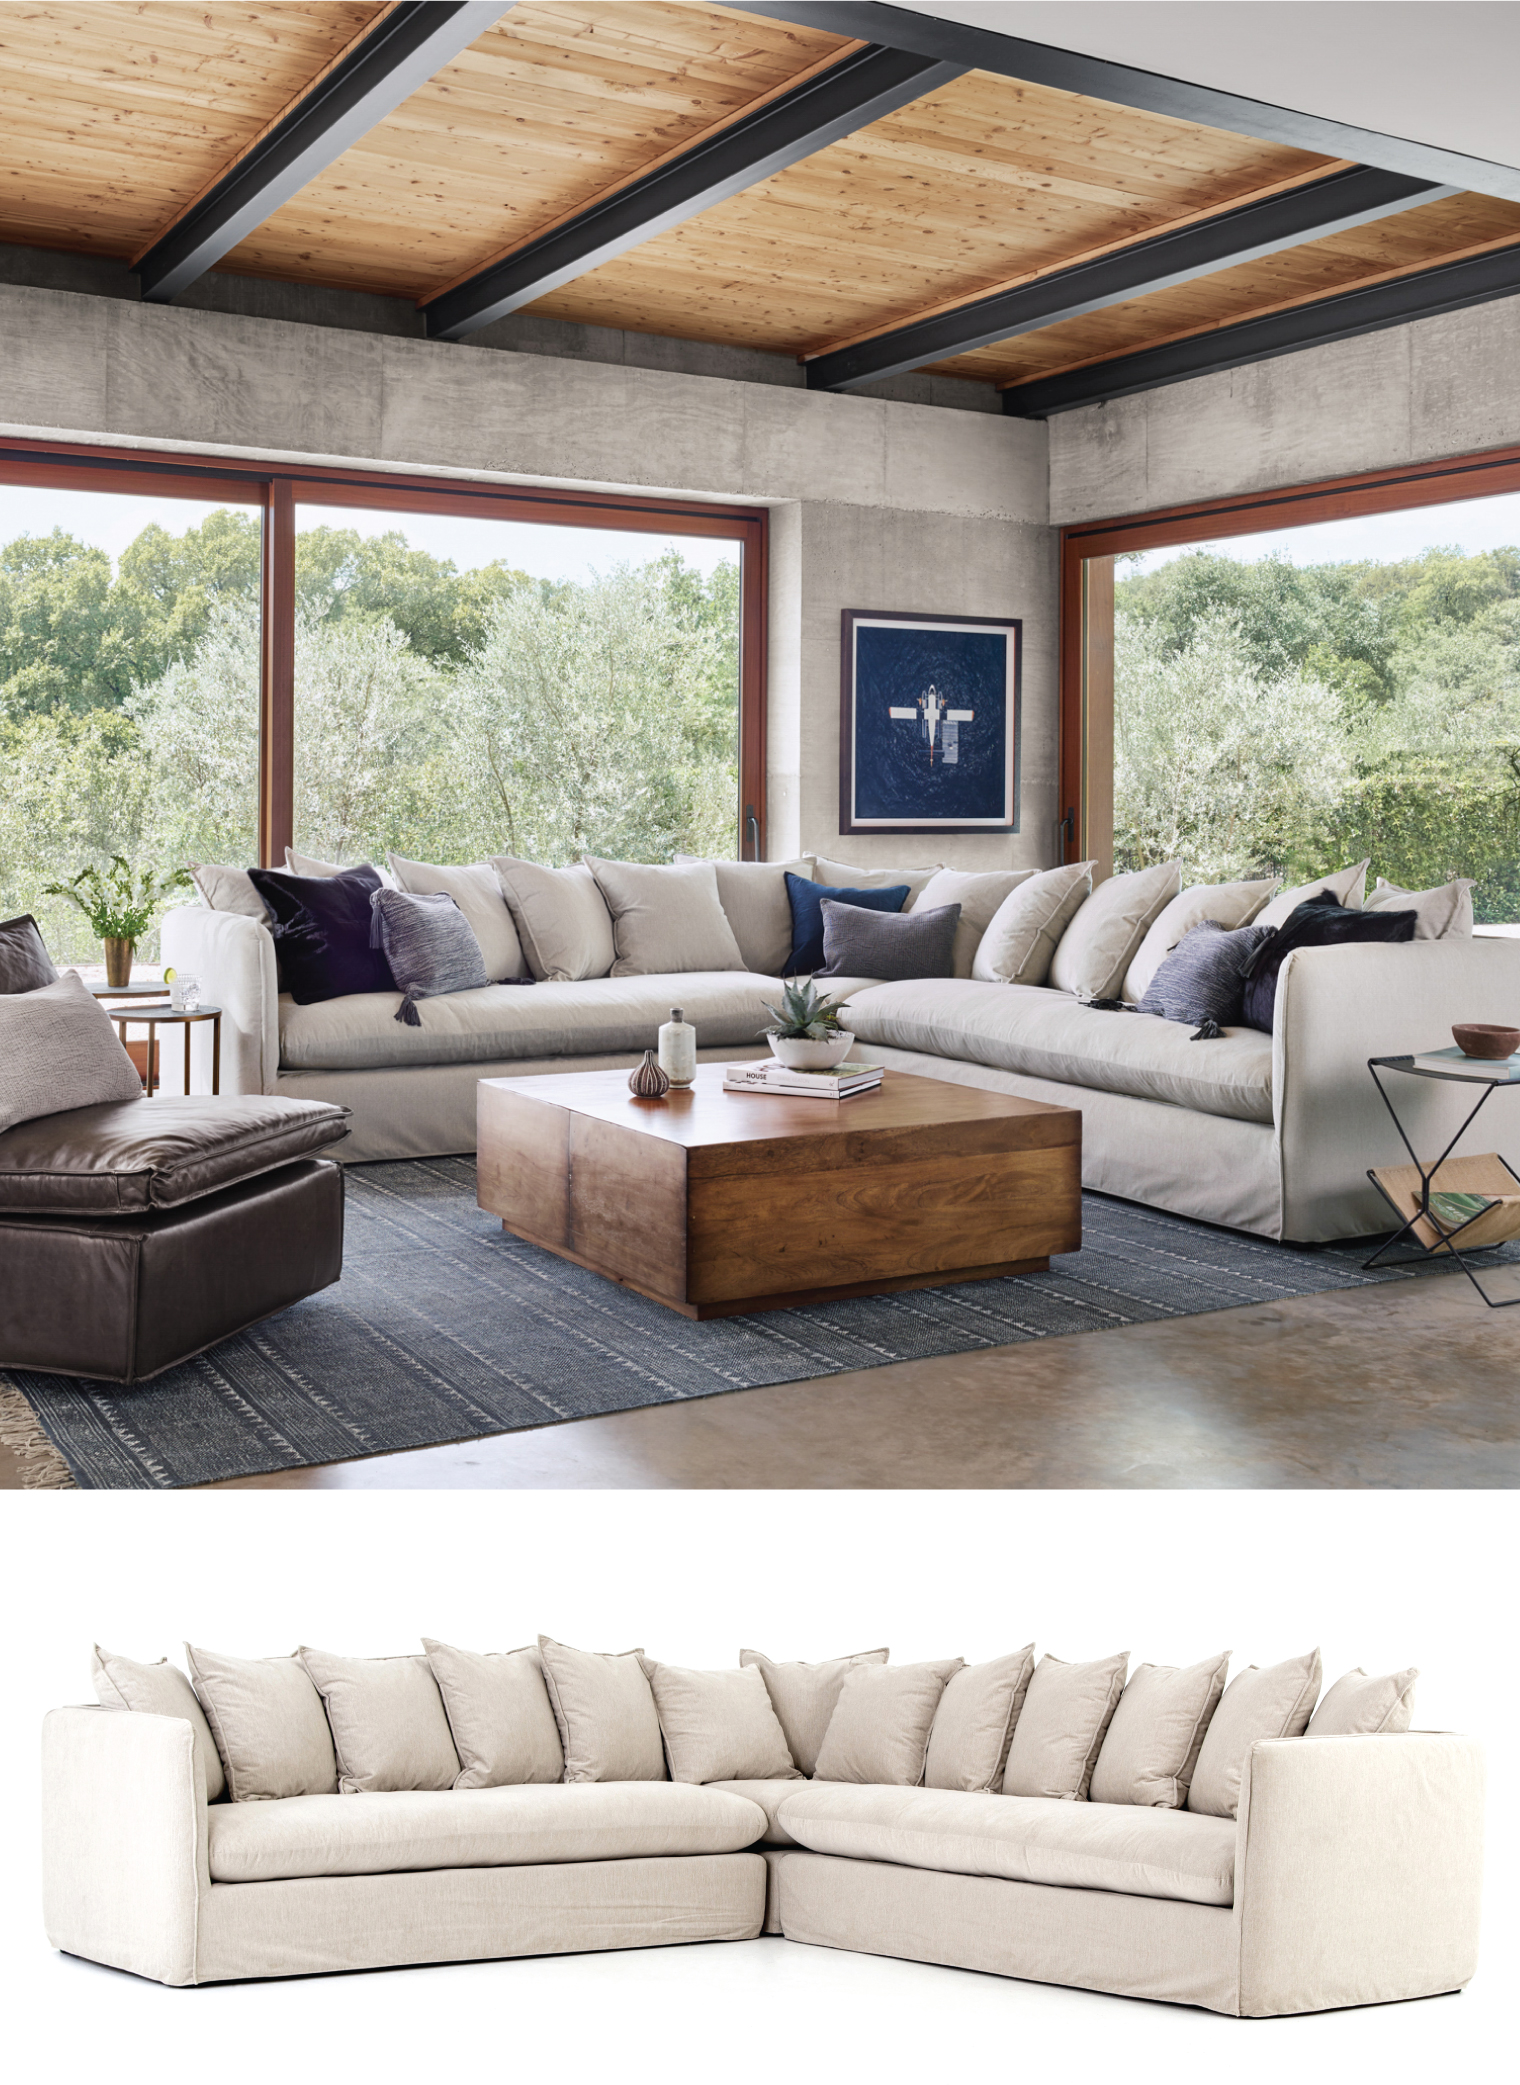 Textured and durable while super soft stain resistant crypton fabric adopts an inviting oatmeal hue to blend effortlessly with a range of styles